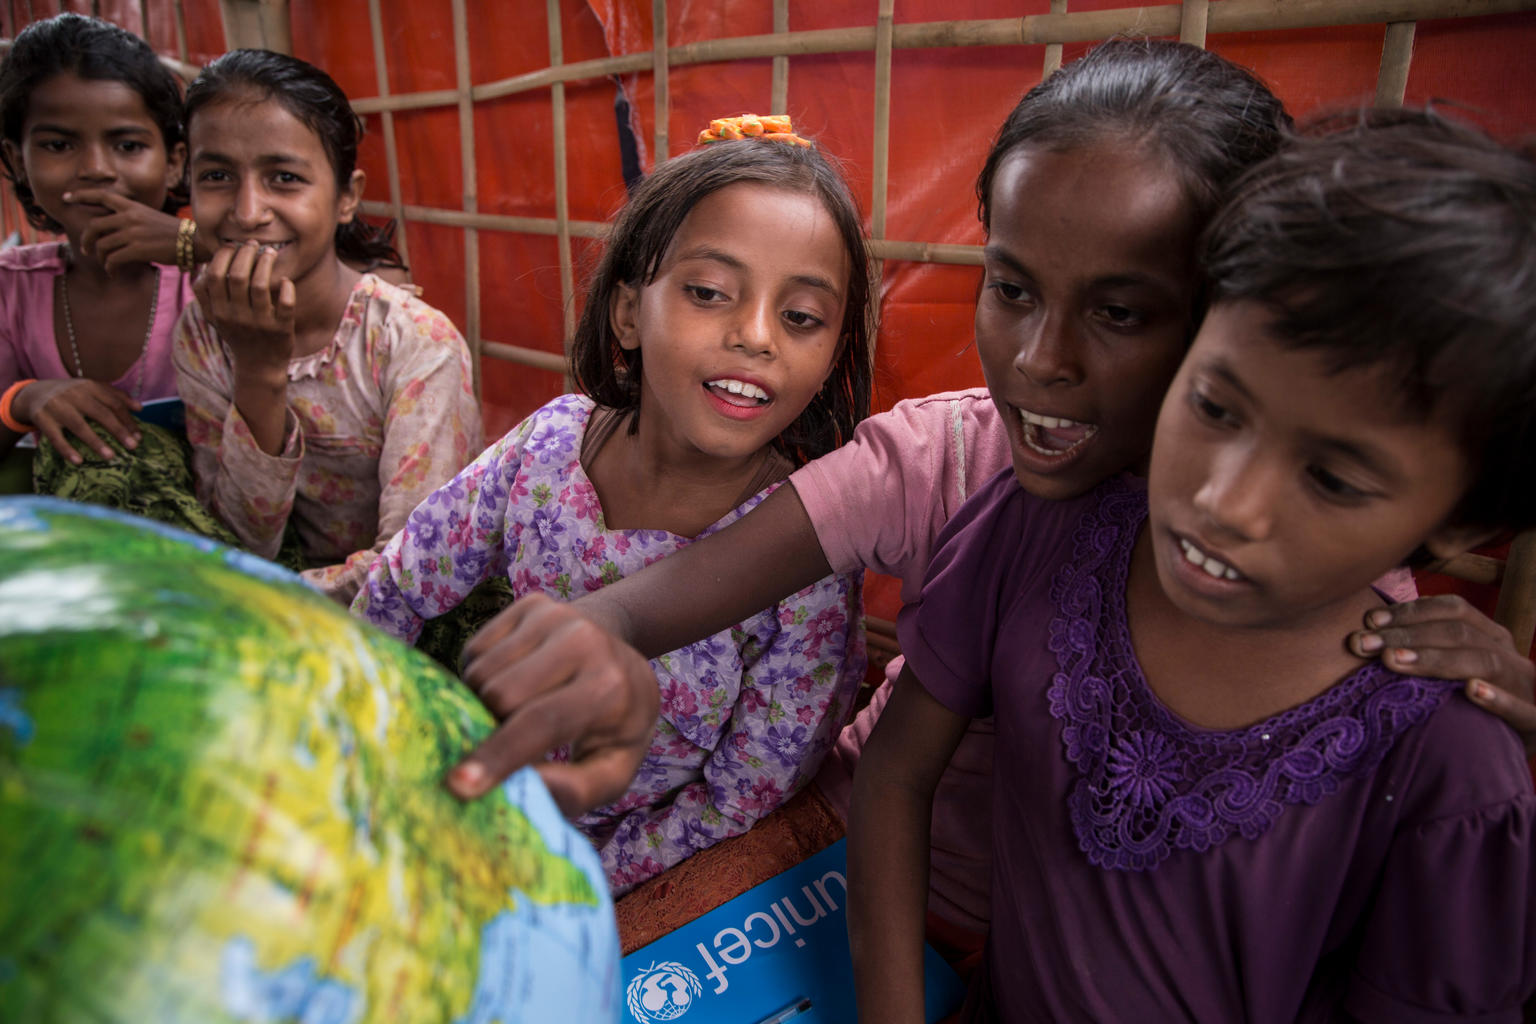 Students with School-in-a-Box materials at a Transitional Learning Center in the Uchiprang refugee camp, near Cox's Bazar, Bangladesh.